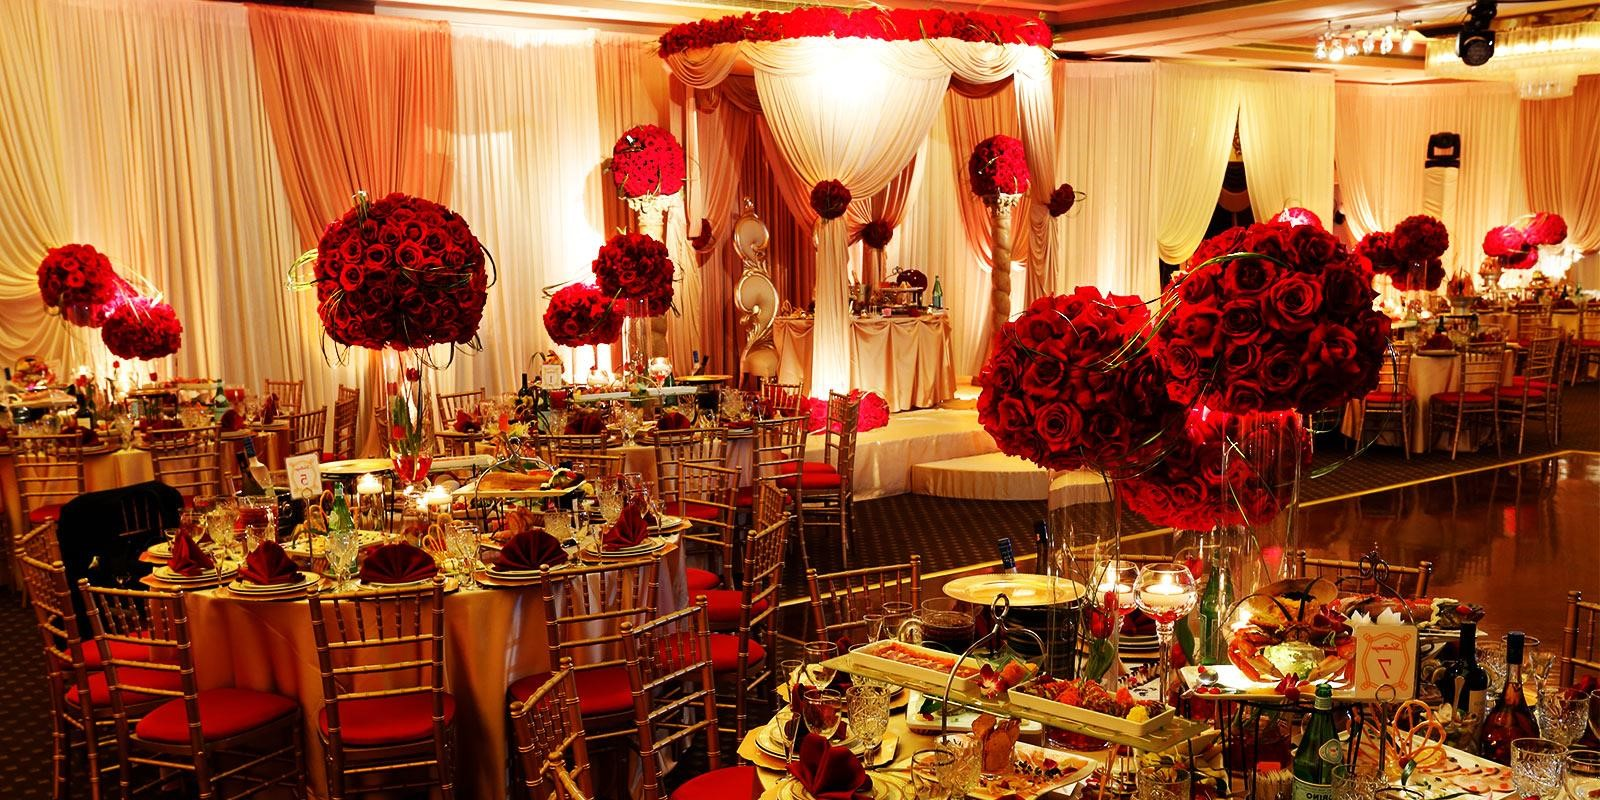 Red And Gold Wedding Centerpieces on oscar party decoration ideas